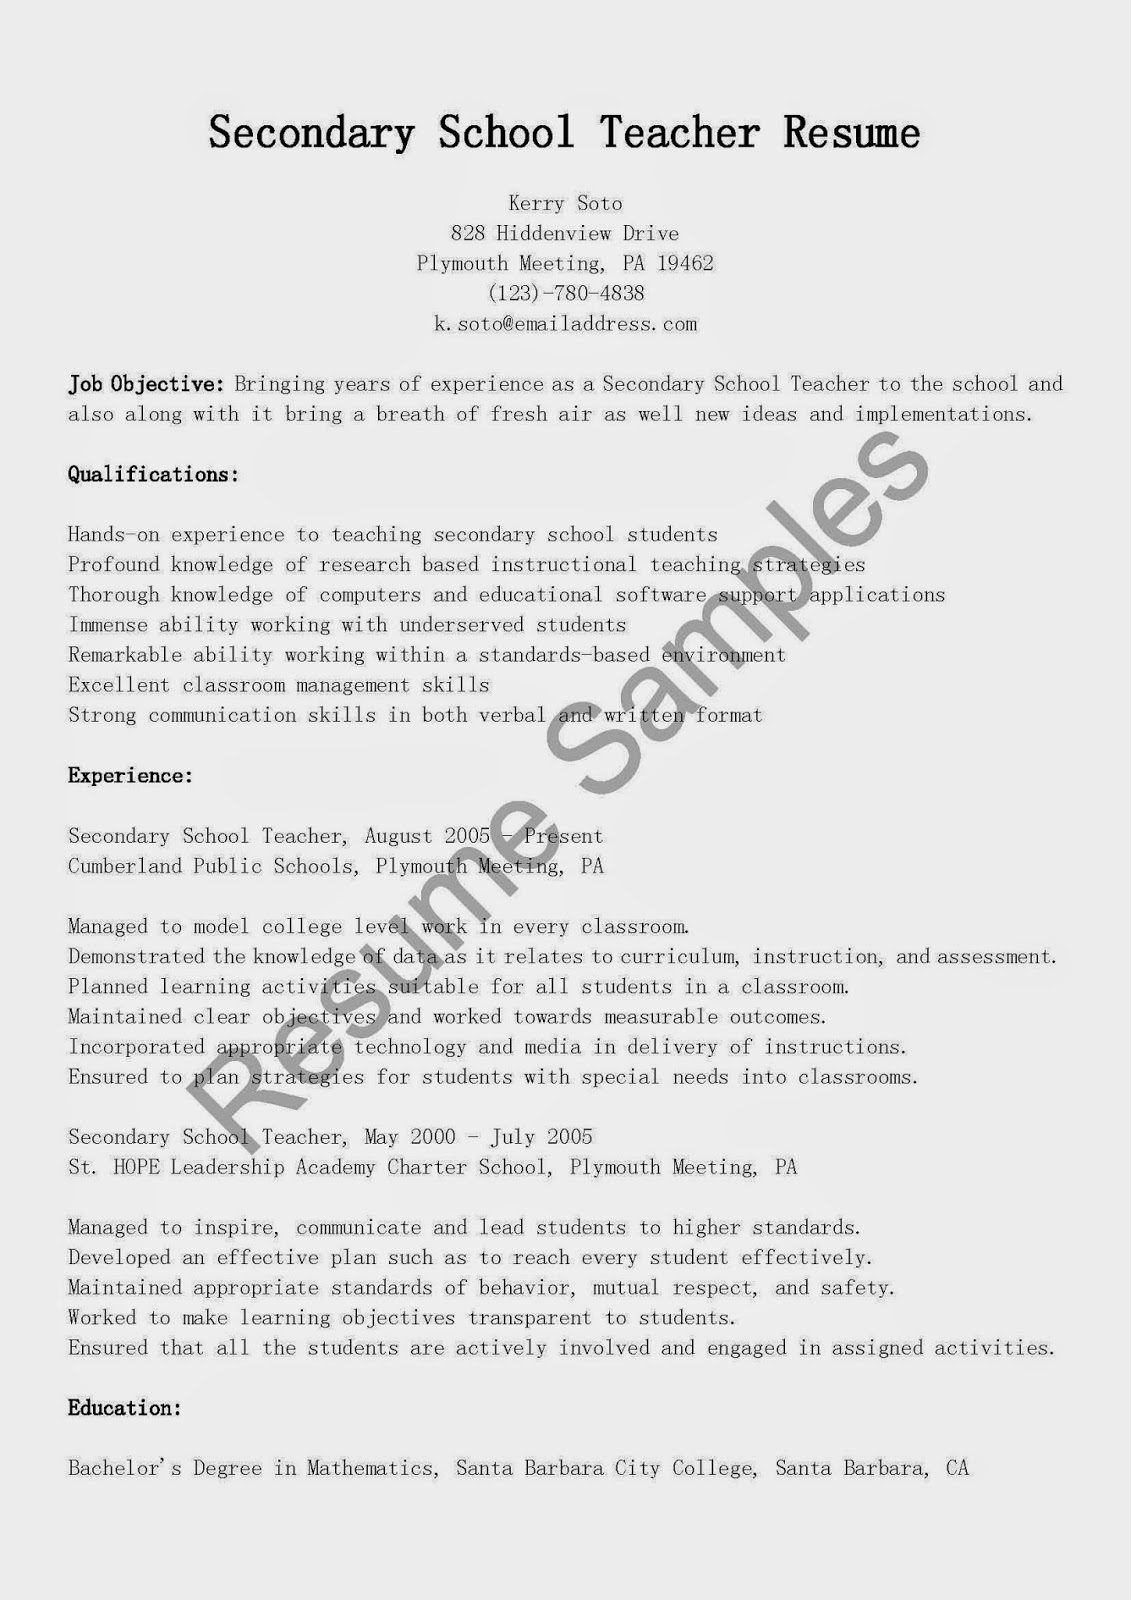 resume goals and objectives